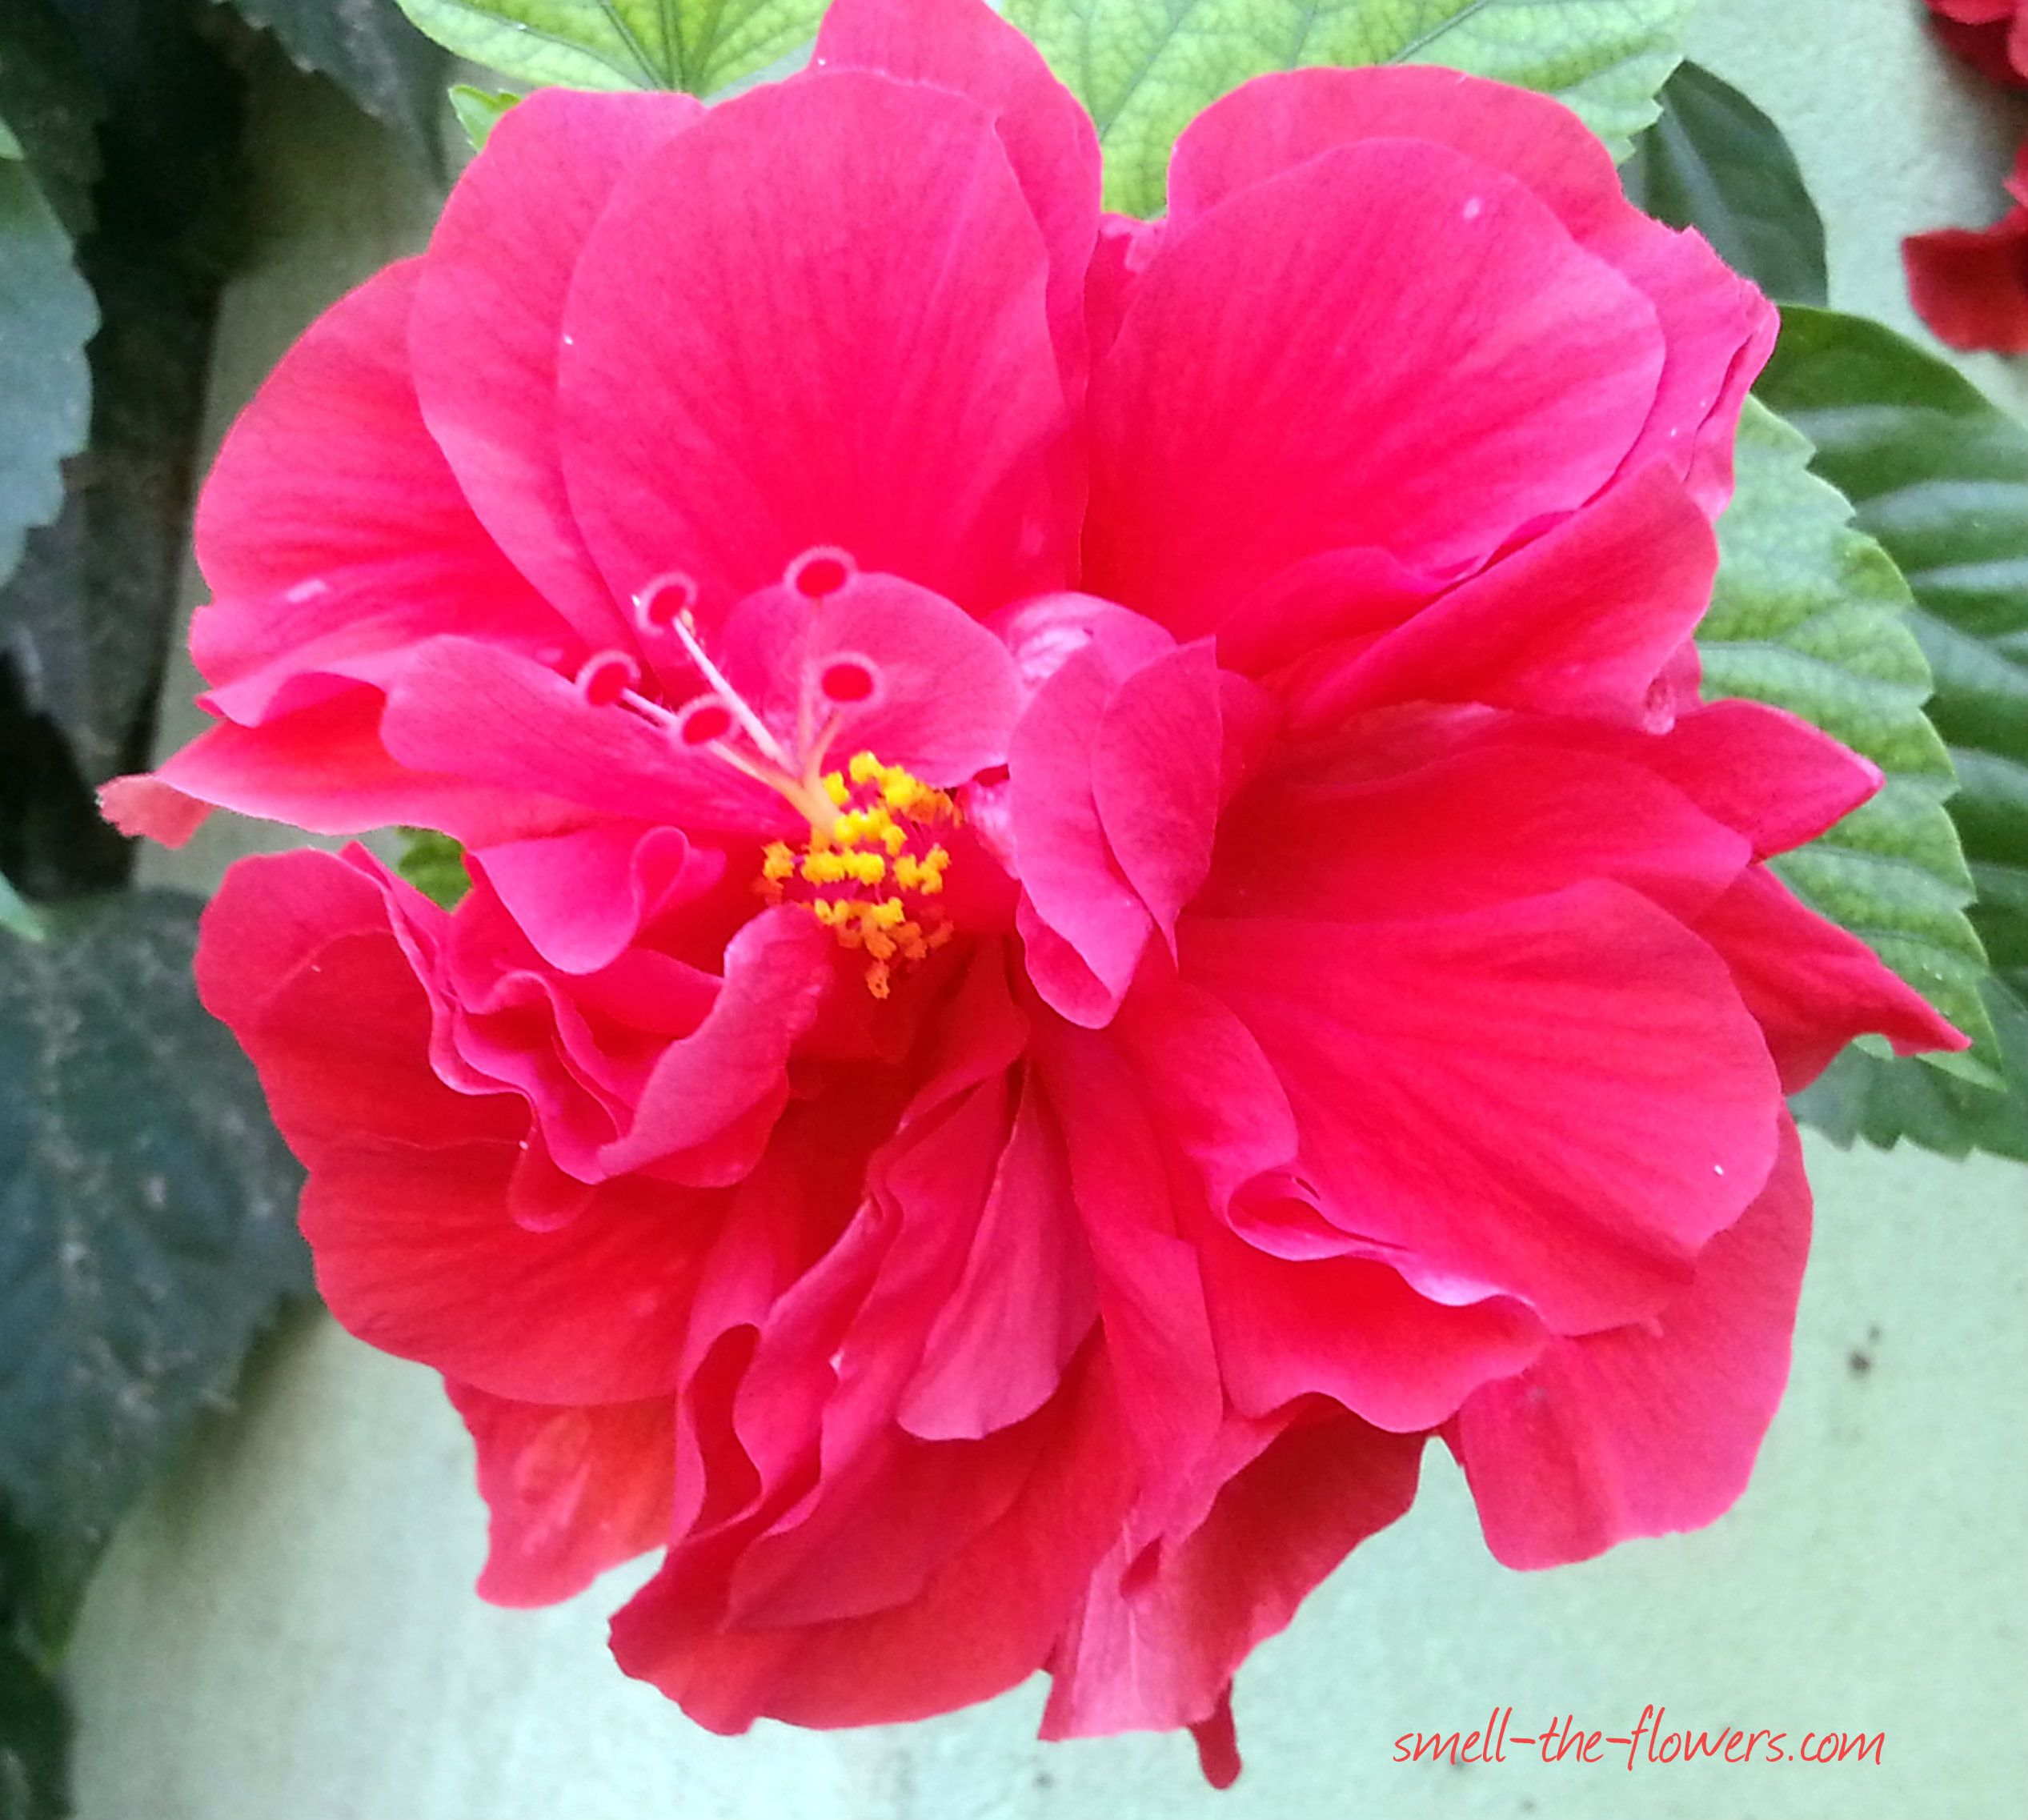 Hibiscus flowers smelltheflowersblog gardening in general hibiscus flowers smelltheflowersblog izmirmasajfo Image collections